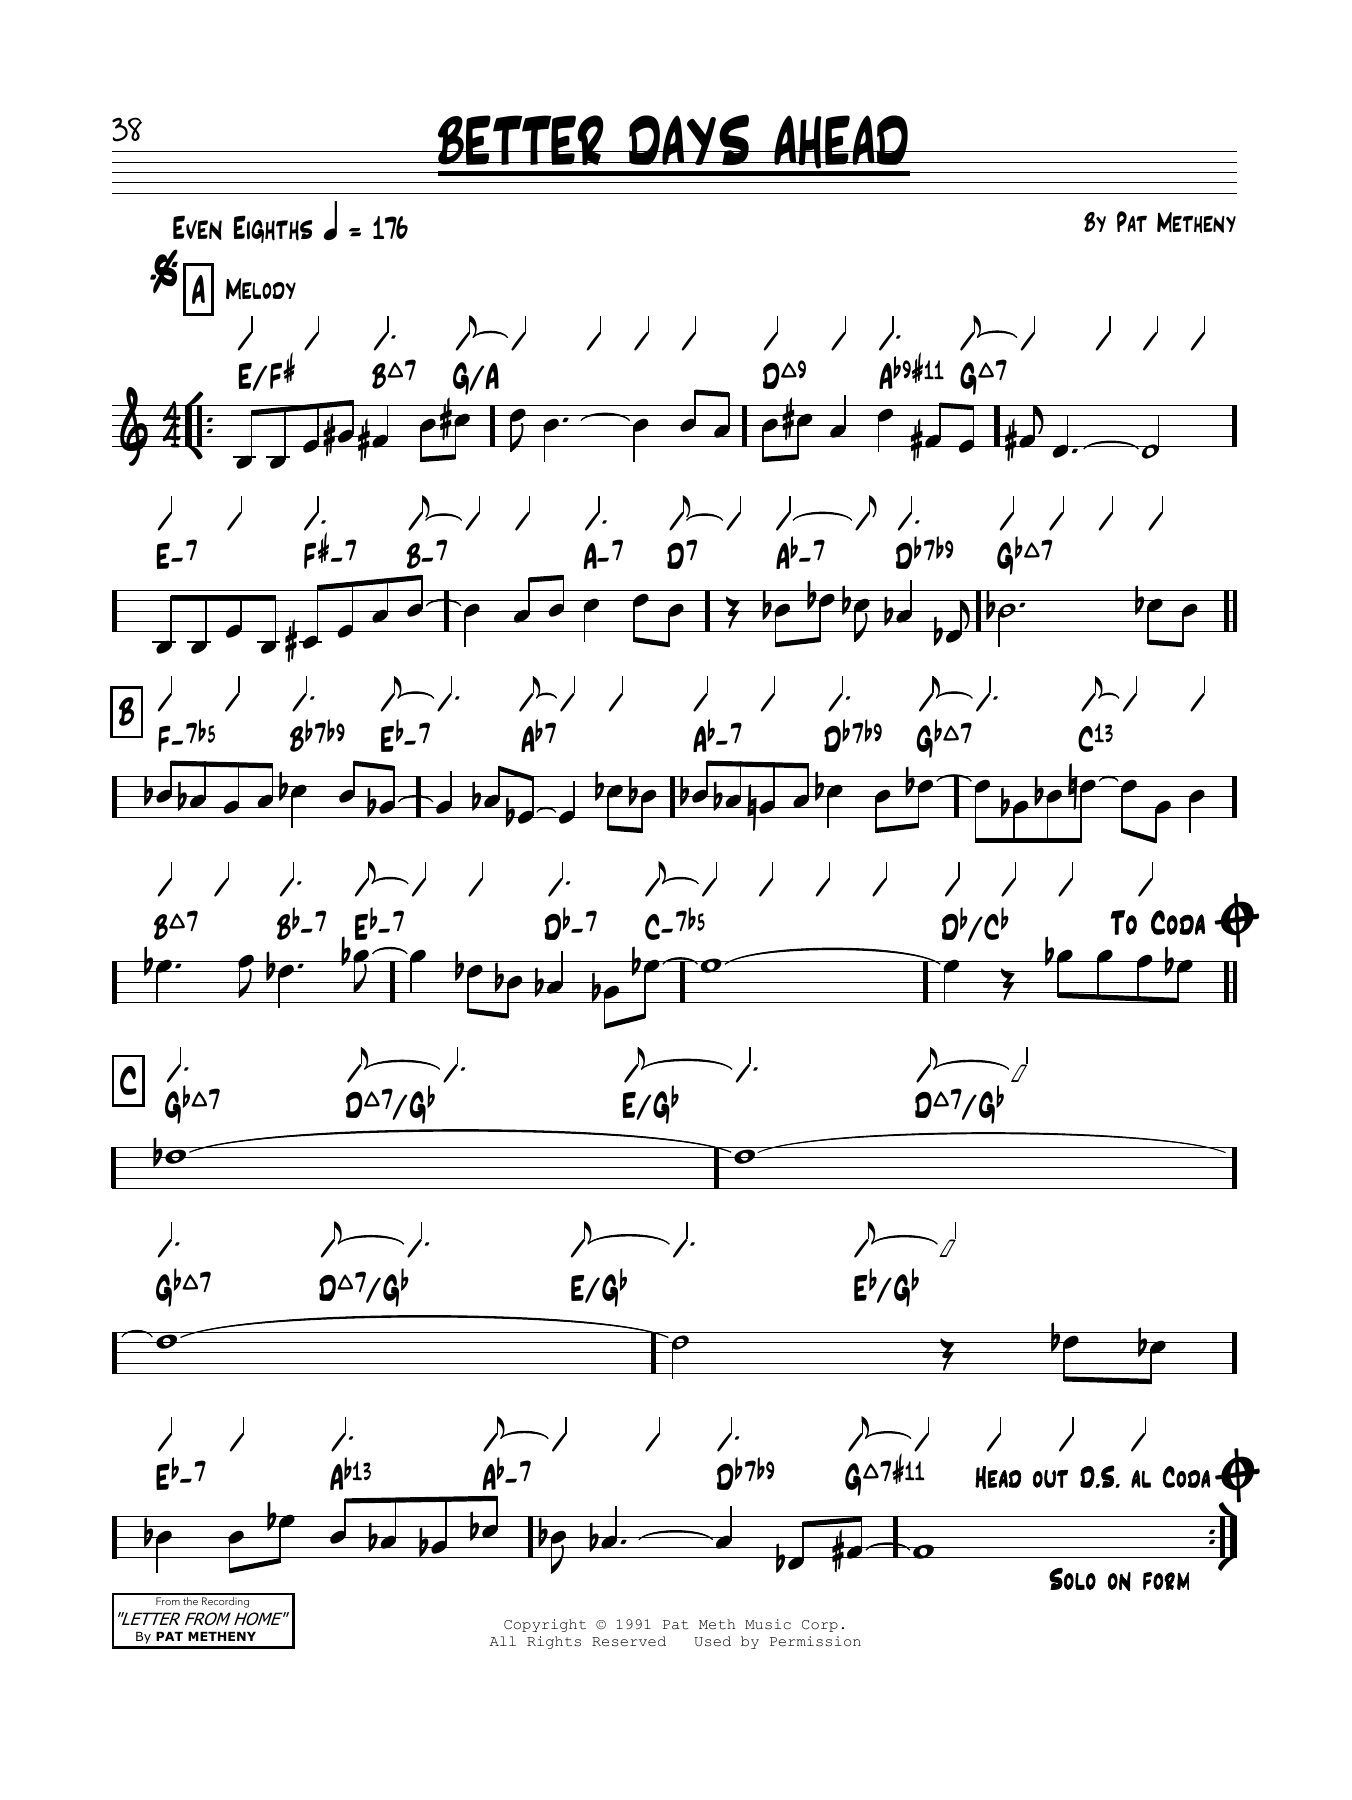 Pat Metheny Better Days Ahead sheet music notes and chords. Download Printable PDF.